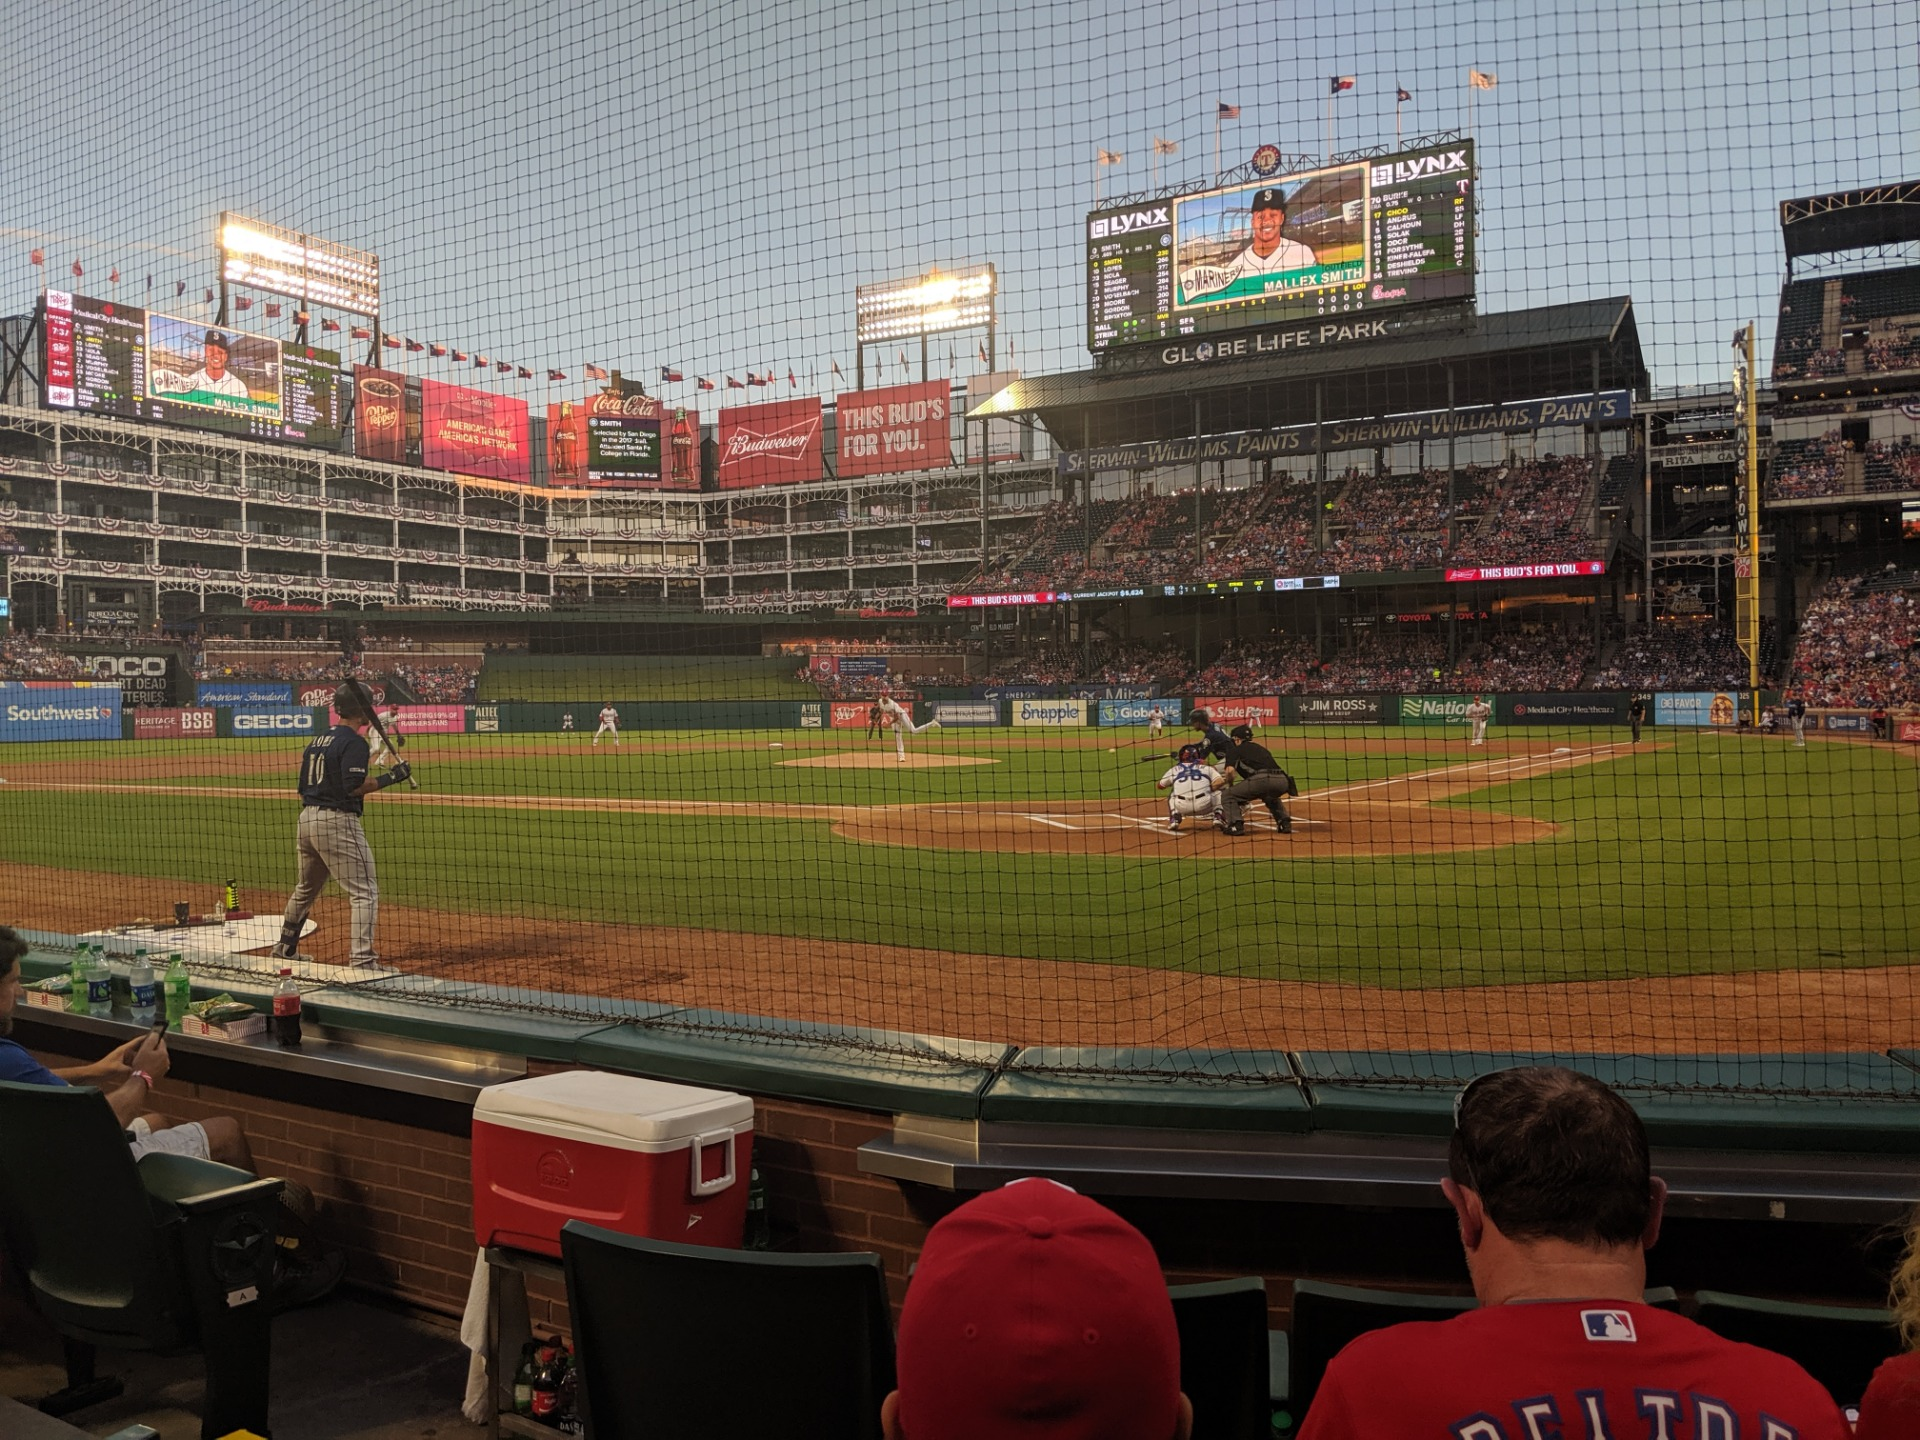 Globe Life Park in Arlington Section 23 Row 1 Seat 5